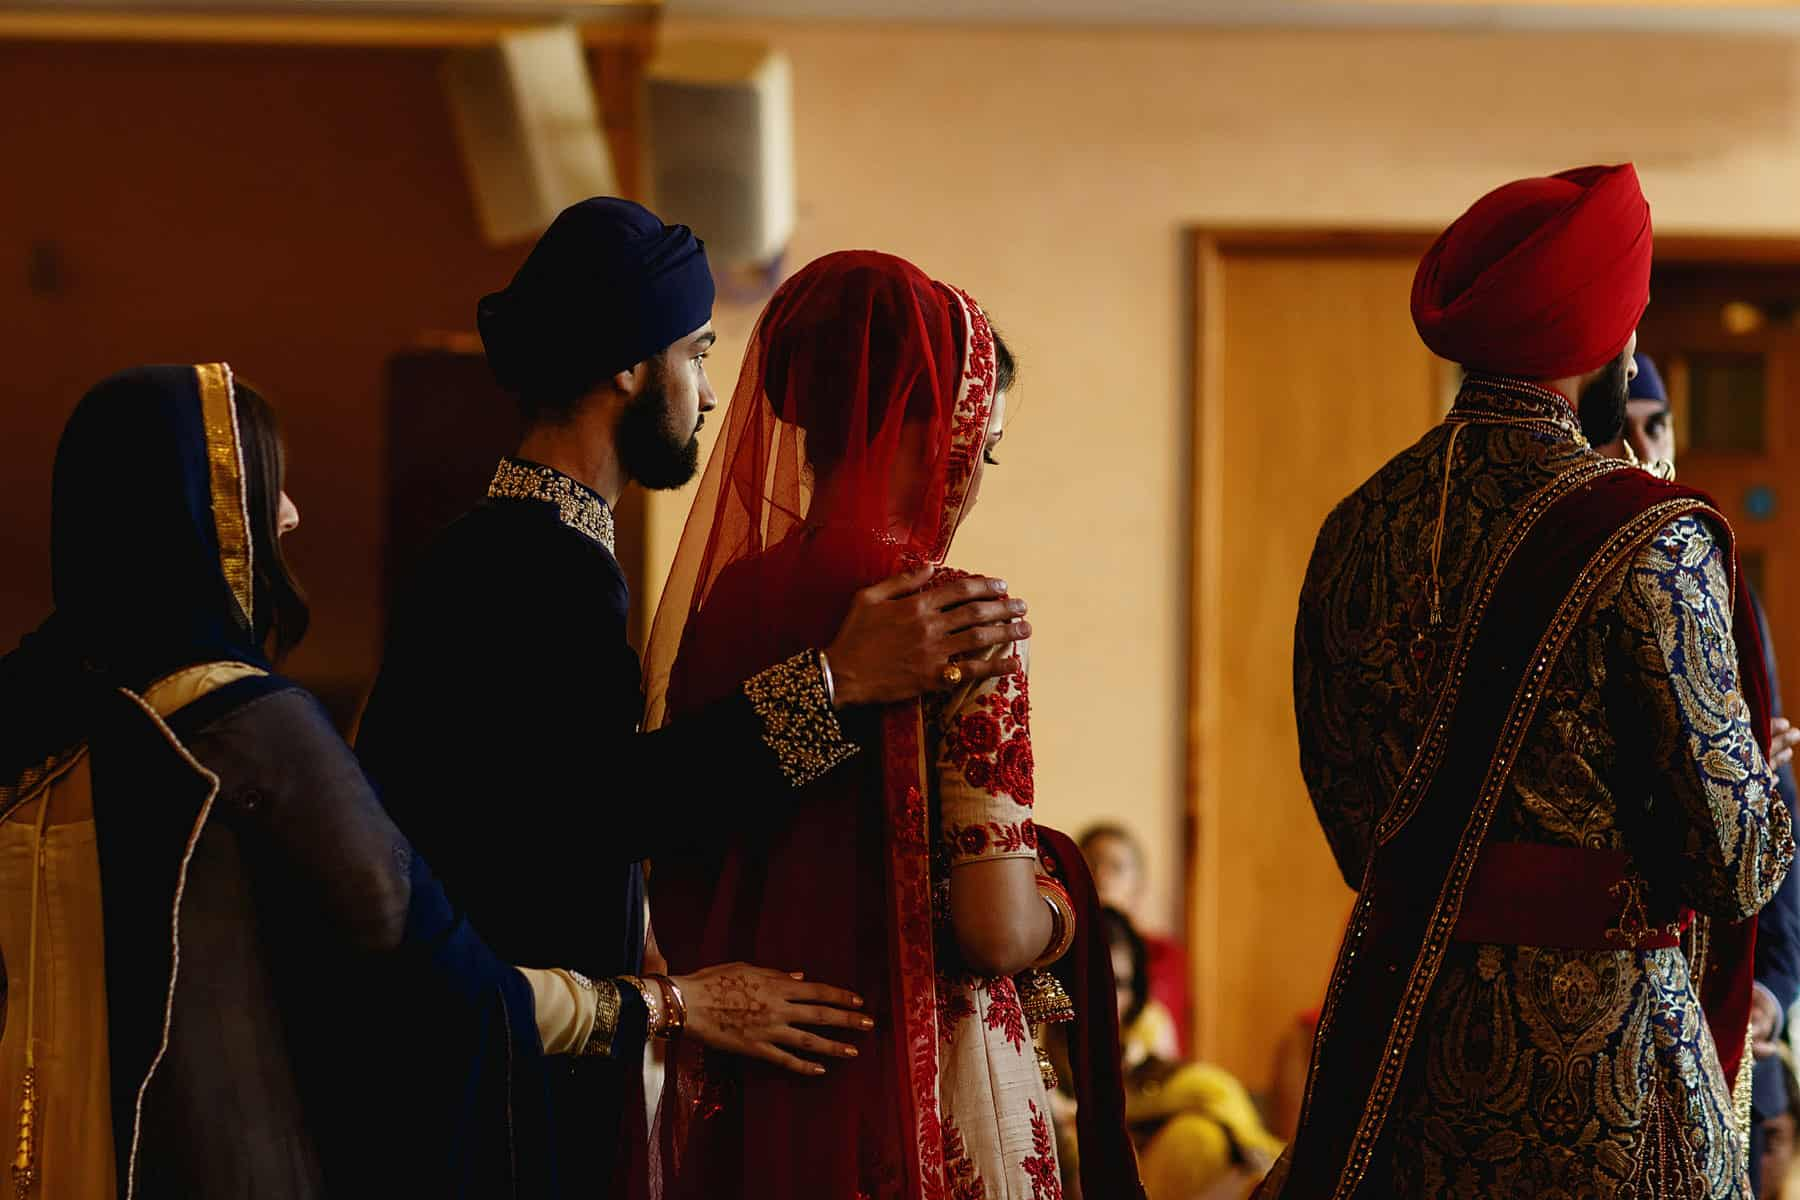 havelock road gurdwara sikh wedding